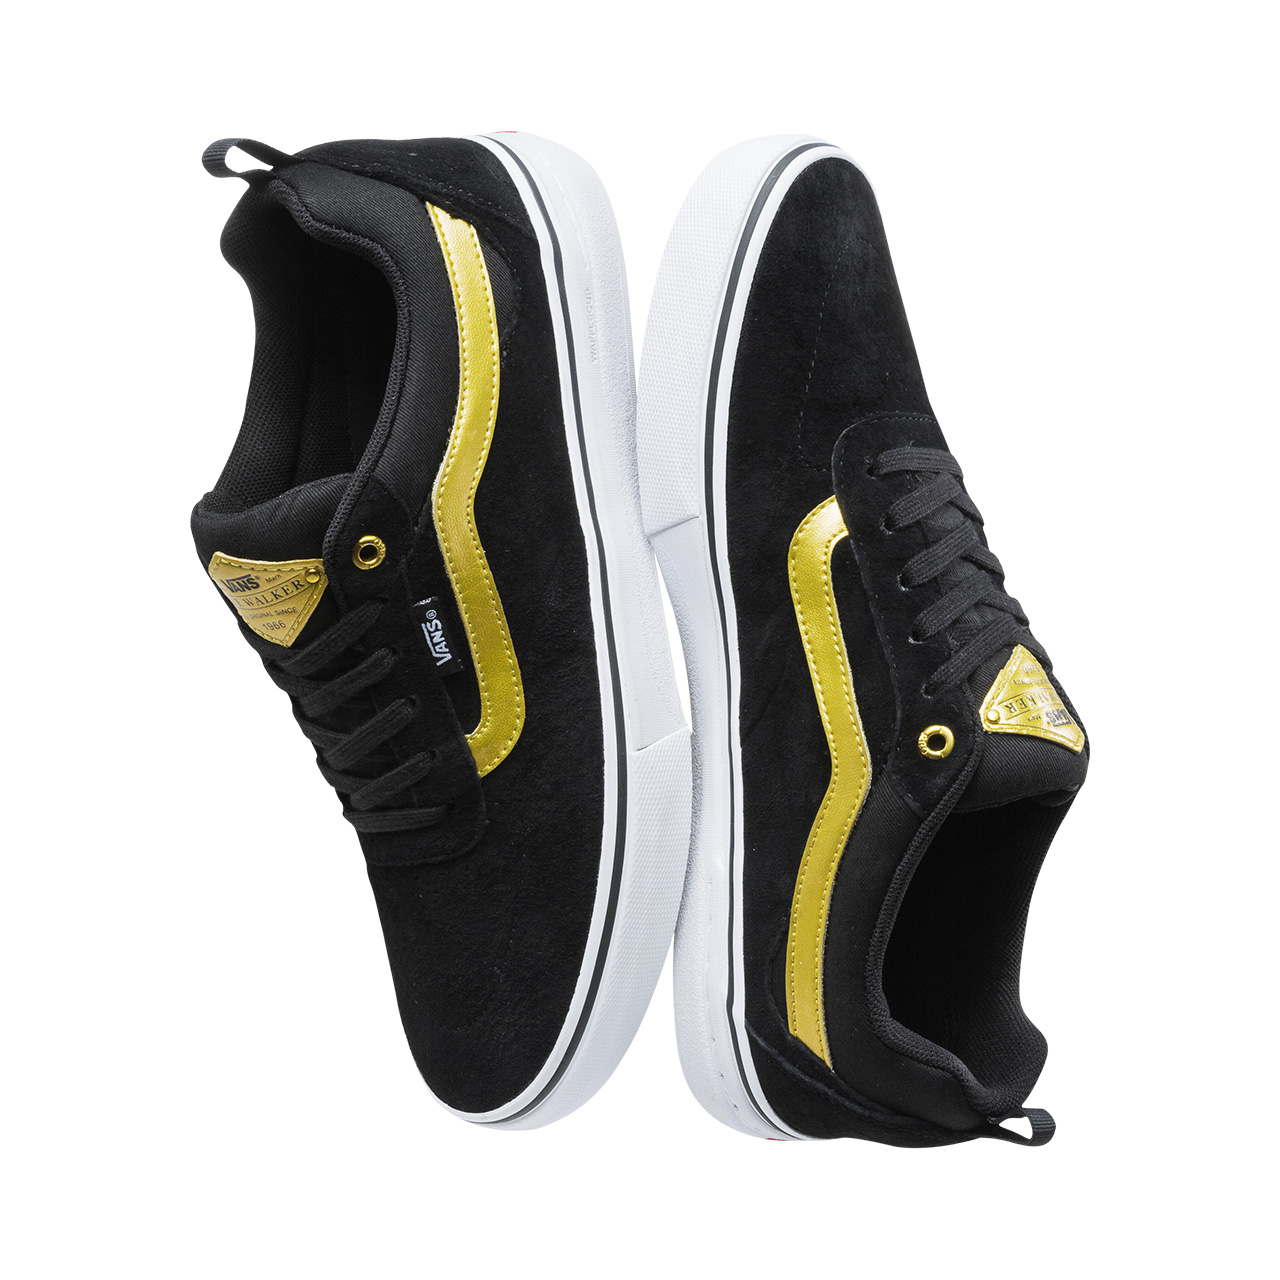 691c7c7e47 Original New Arrival Vans Mens Kyle Walker Pro Low top Skateboarding Shoes  Pro Skate Sneakers Canvas Sport Outdoor VN0A2XSGB2G-in Skateboarding from  Sports ...